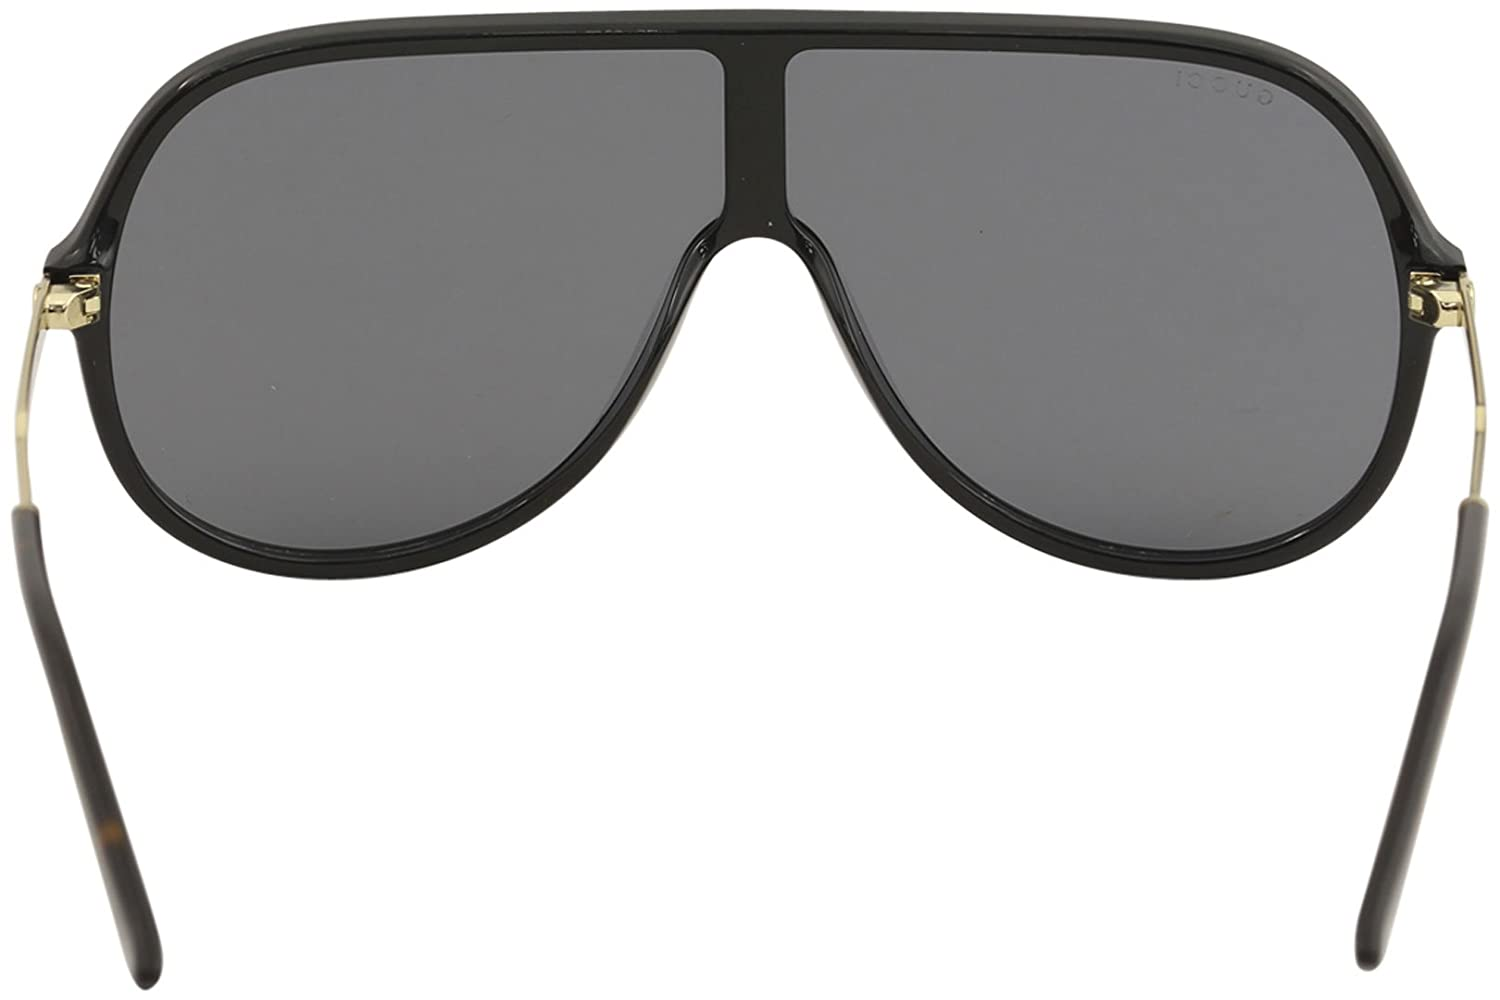 4cf6d6376c4a0 Amazon.com  Gucci GG 0199S 001 Black Plastic Shield Sunglasses Grey Lens   Clothing